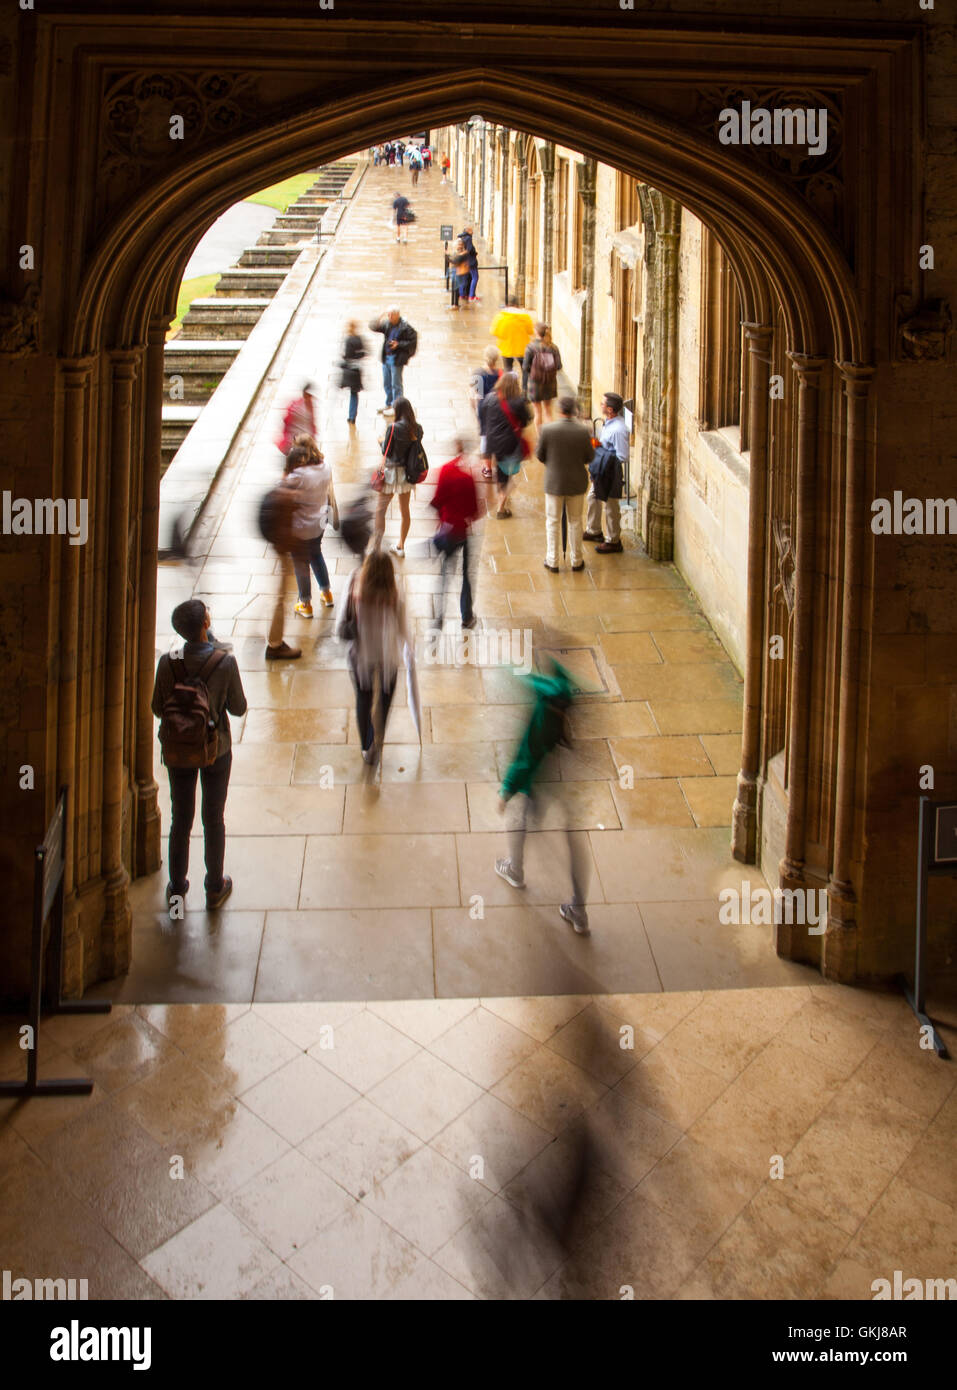 Christ Church Collage Oxford students rushing and hurrying about  using a slow shutter speed - Stock Image